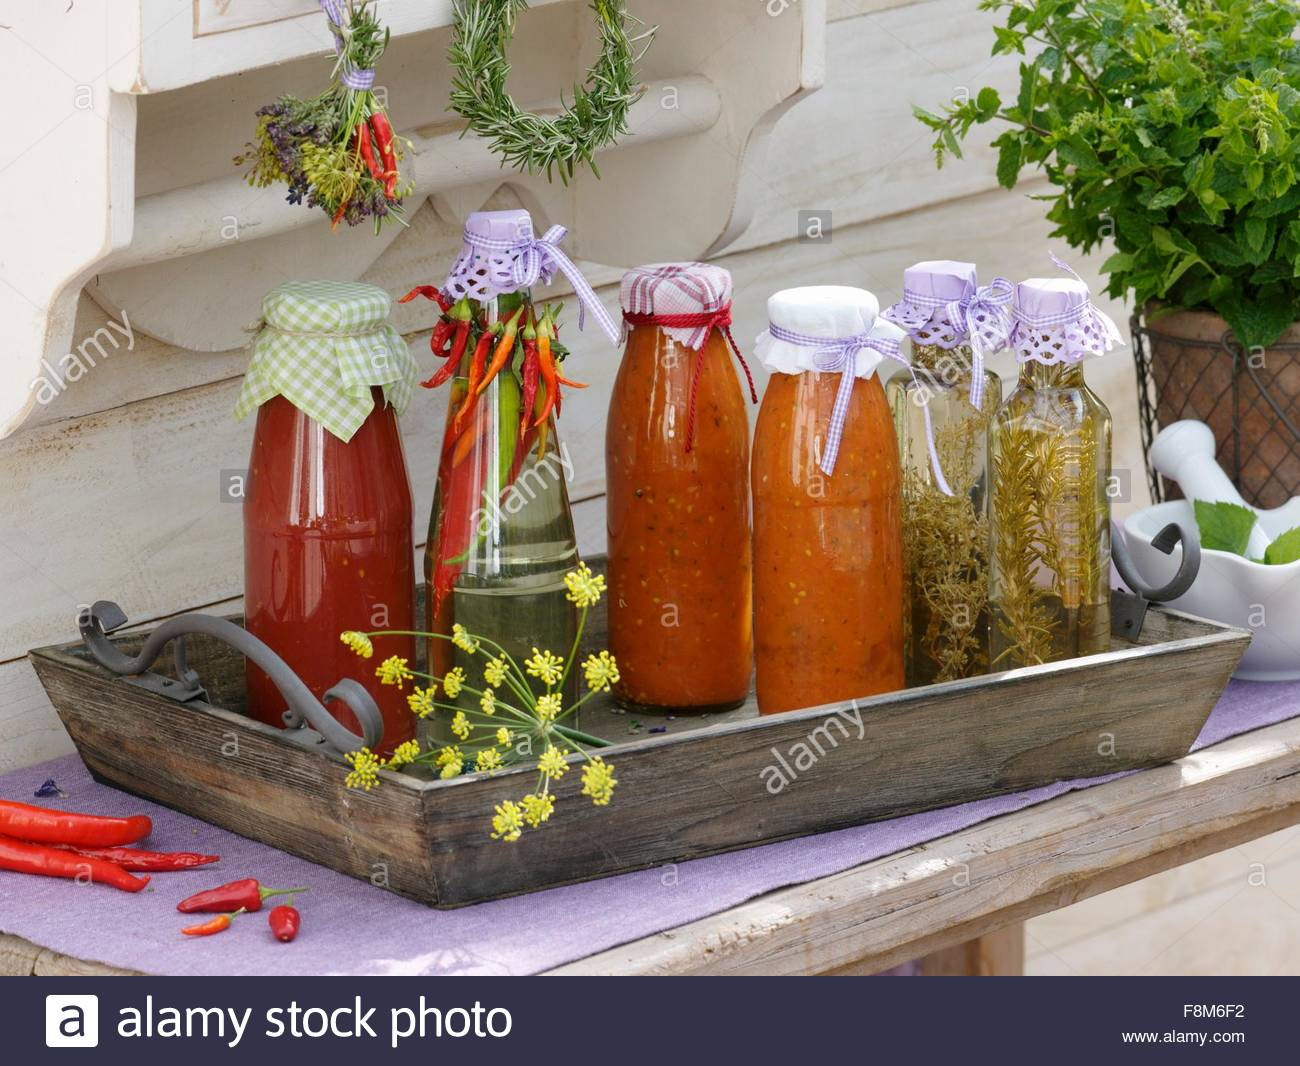 Home-made tomato pesto and chilli-, thyme- and rosemary vinegar - Stock Image